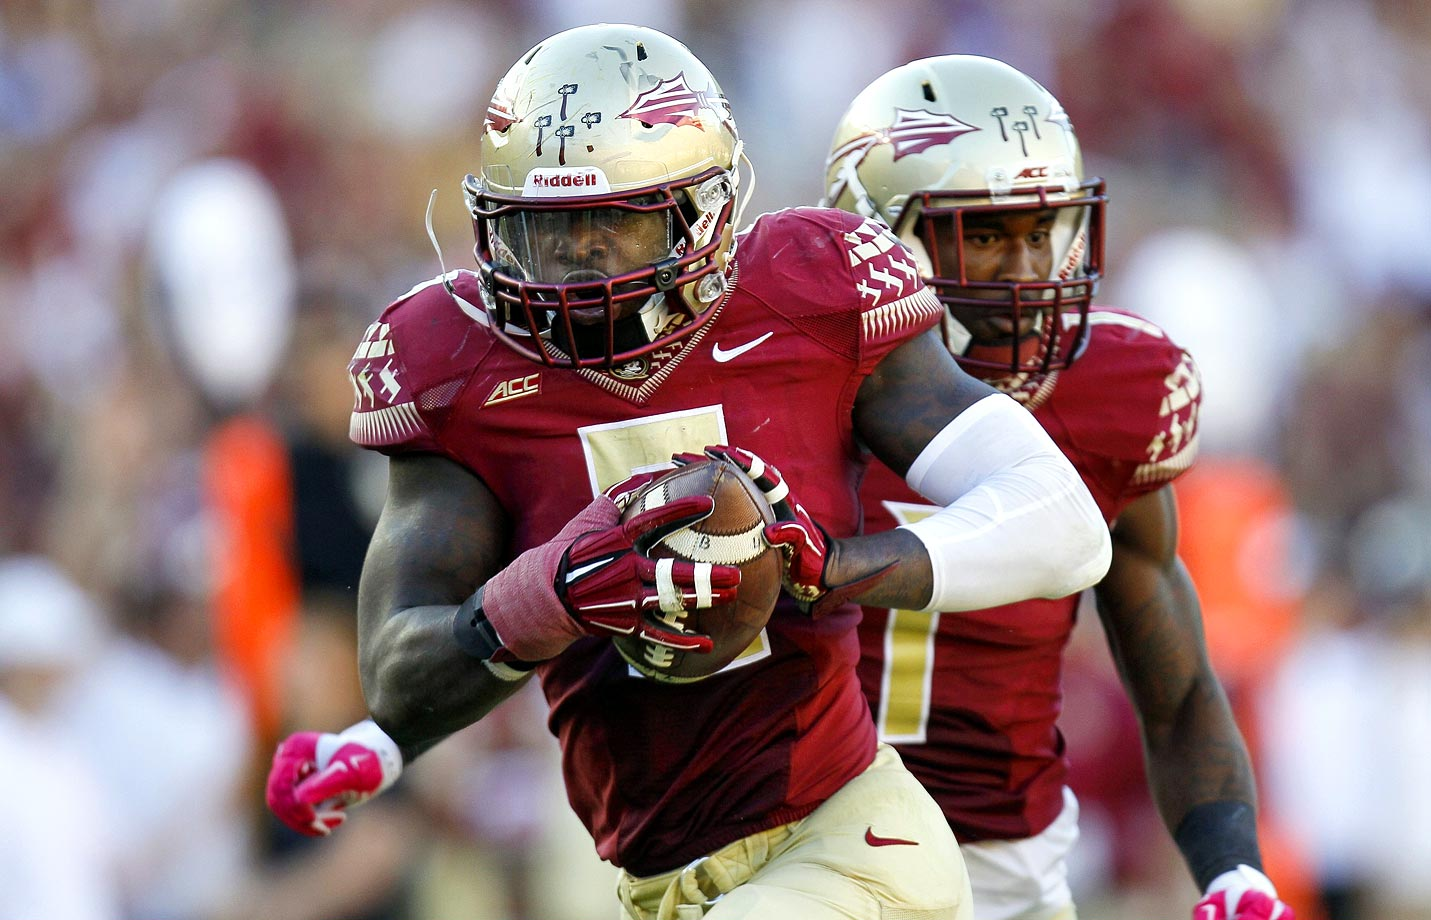 The Seminoles defense posted its first truly dominant performance, holding the Demon Deacons to 126 yards of offense and forcing three turnovers. Linebacker Reggie Northrup outscored Wake Forest by returning a fumble 31 yards for a touchdown.